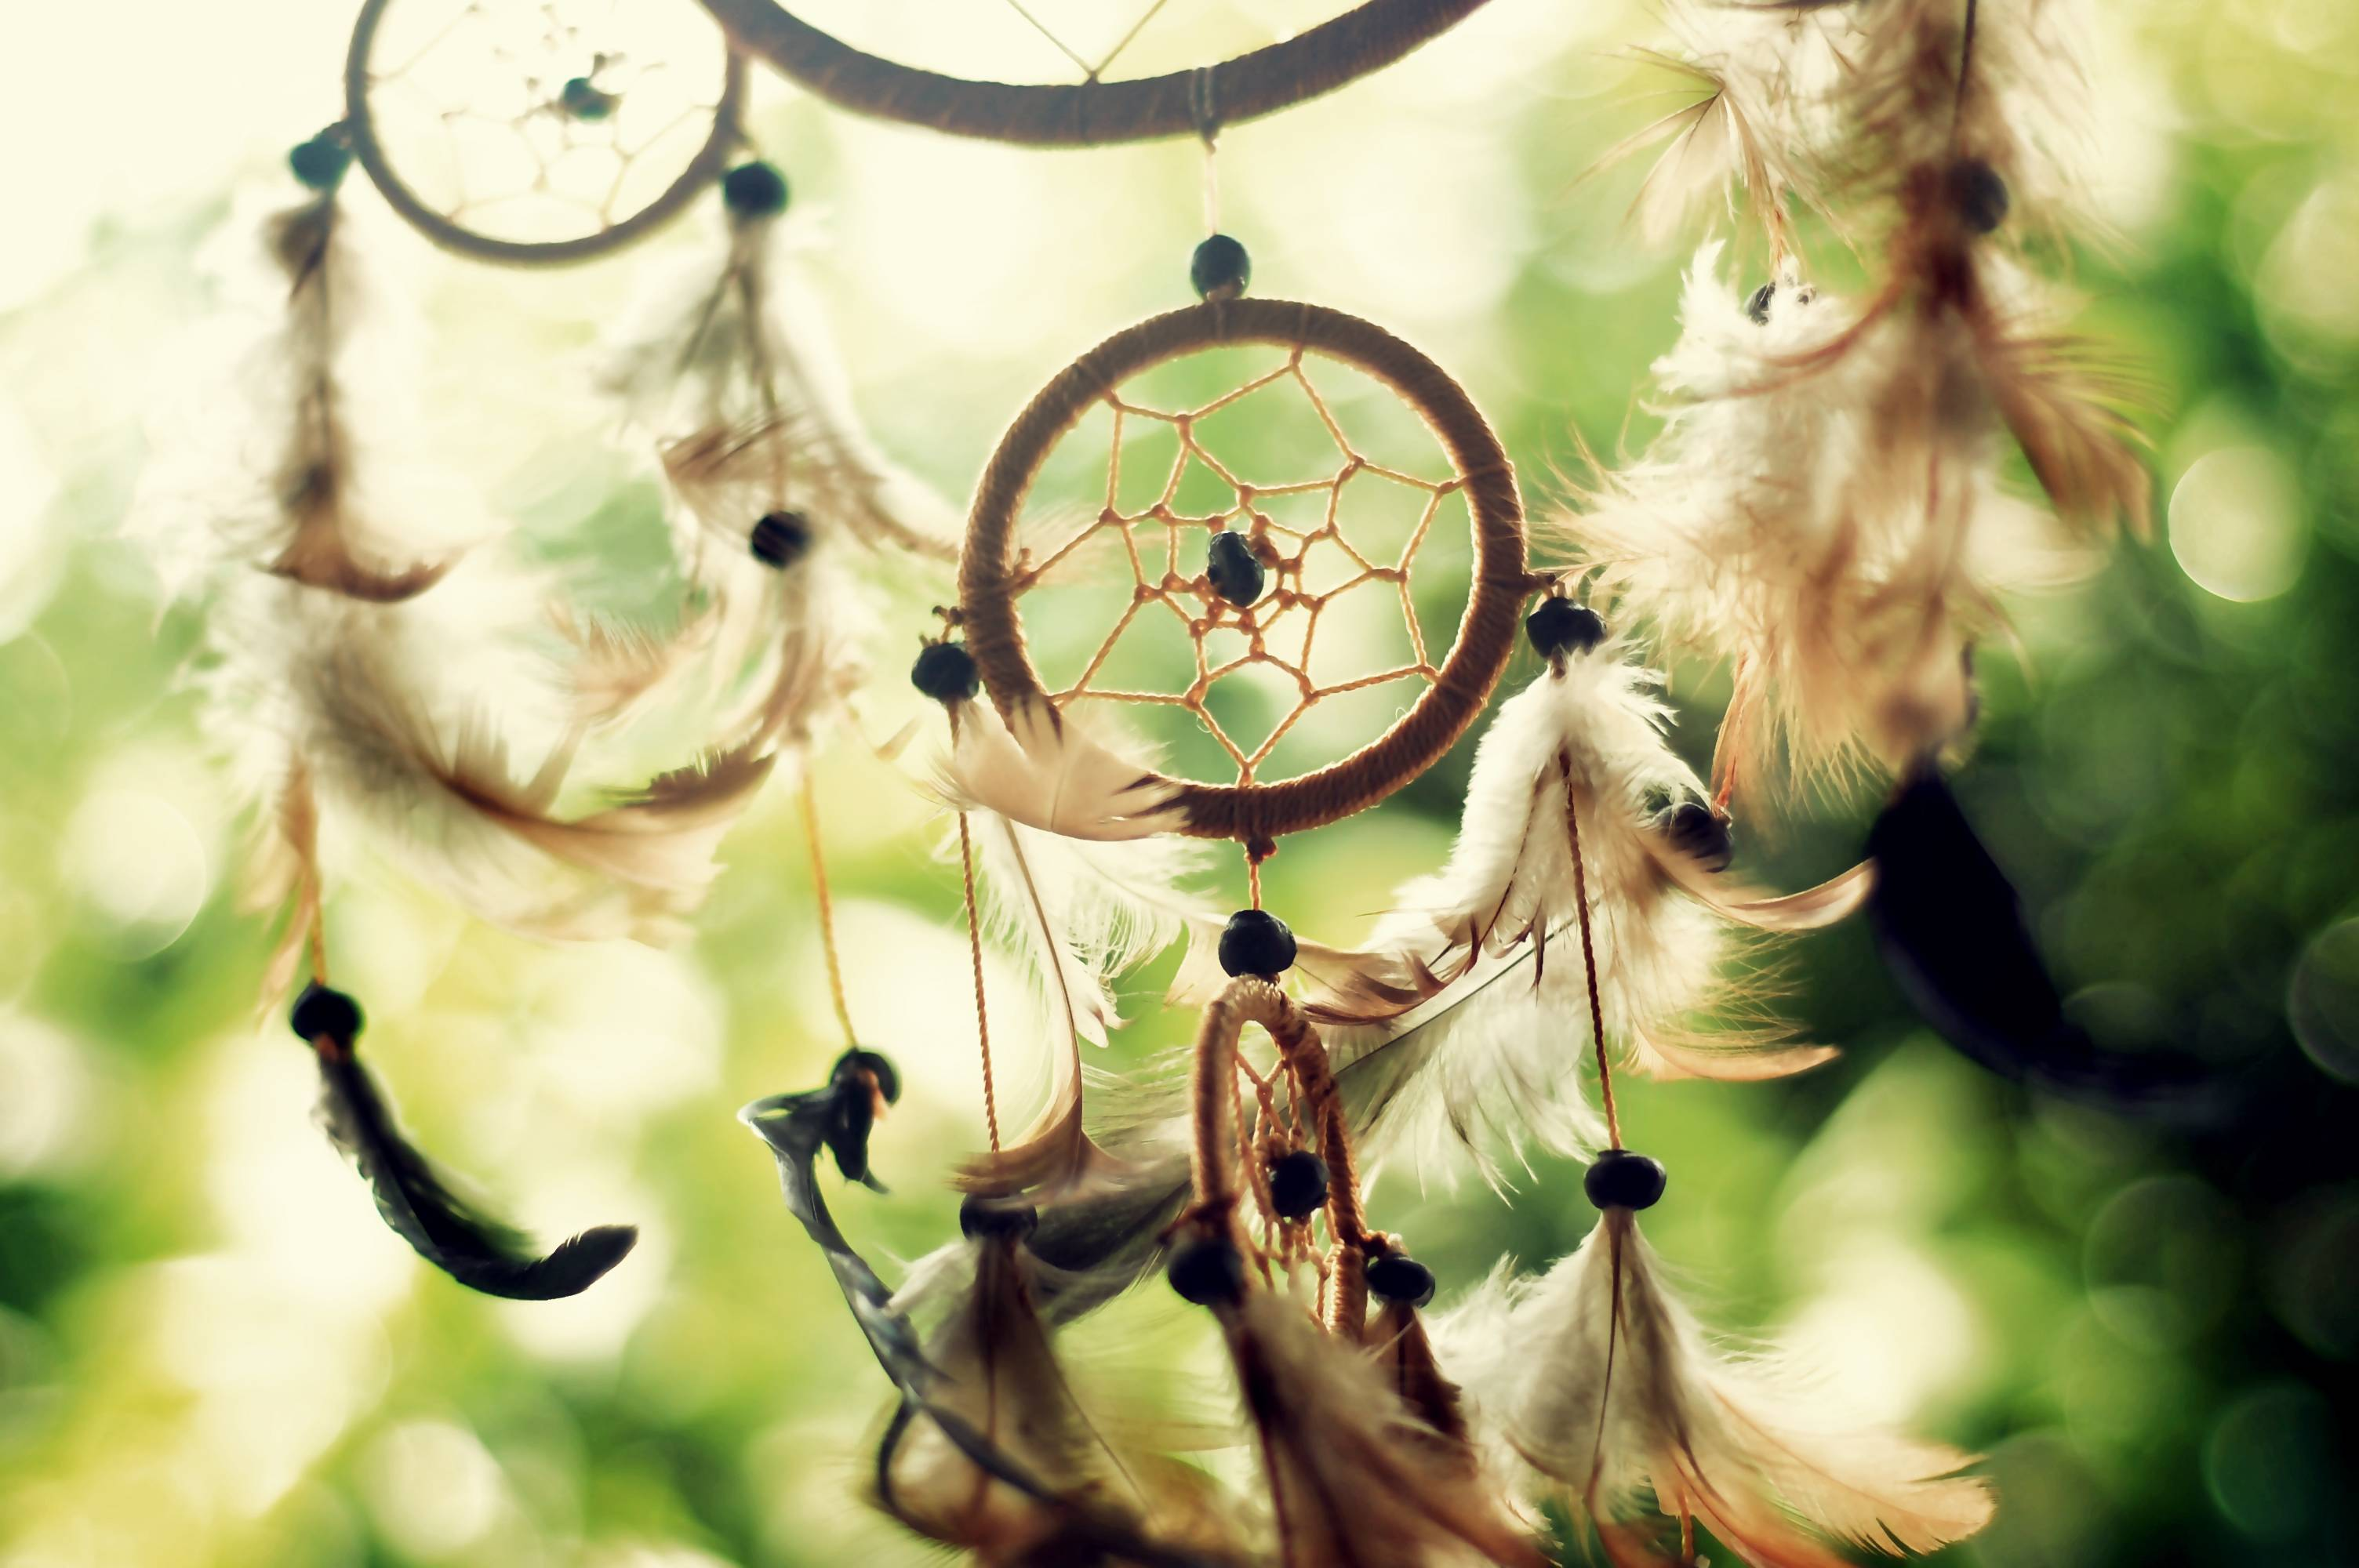 Dreamcatcher Wallpapers - Wallpaper Cave